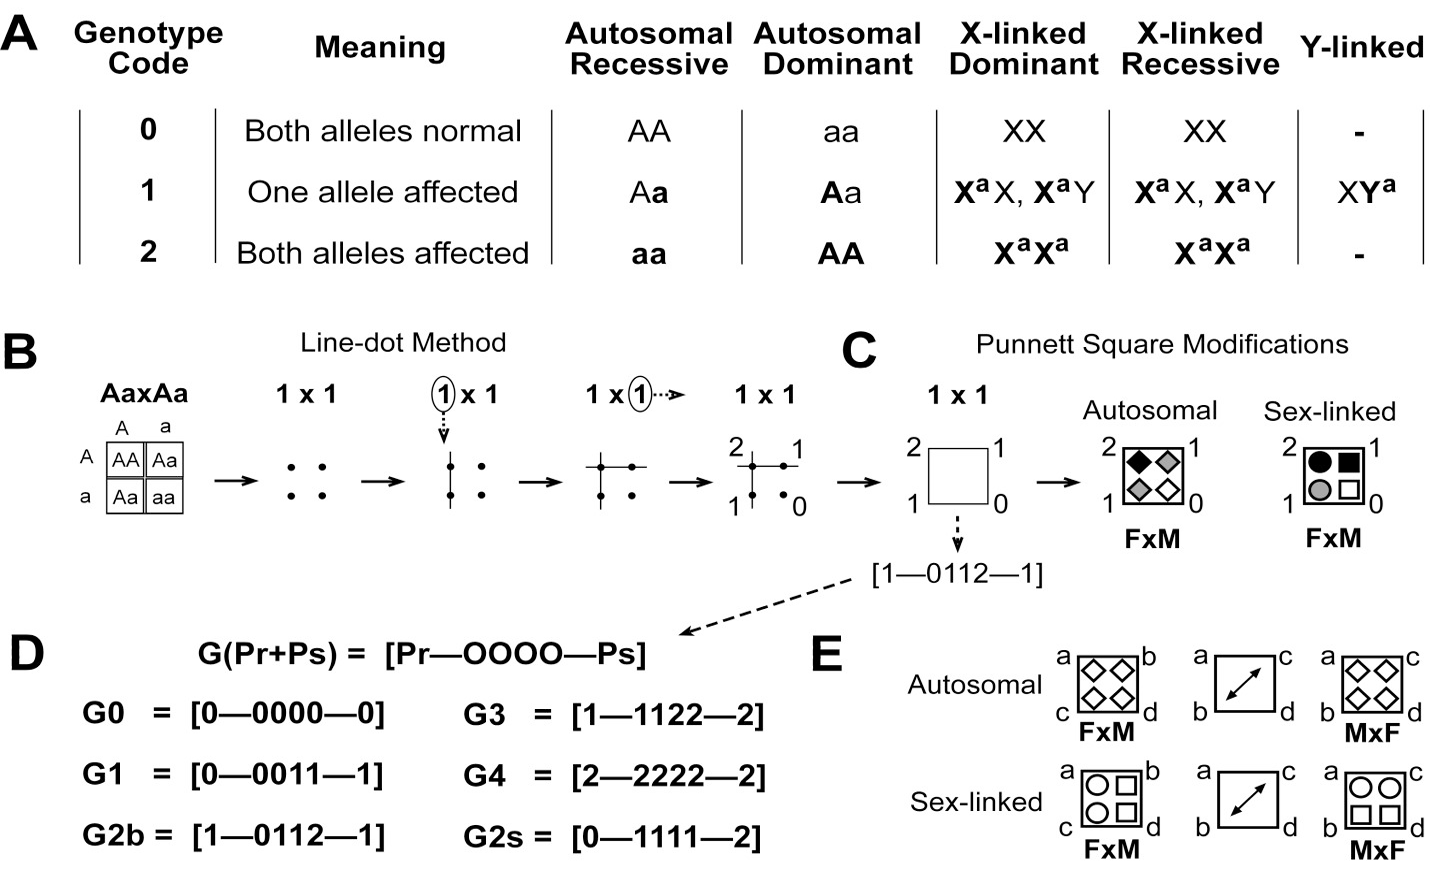 Genotype And Phenotype Probabilities By Ternary Code Based